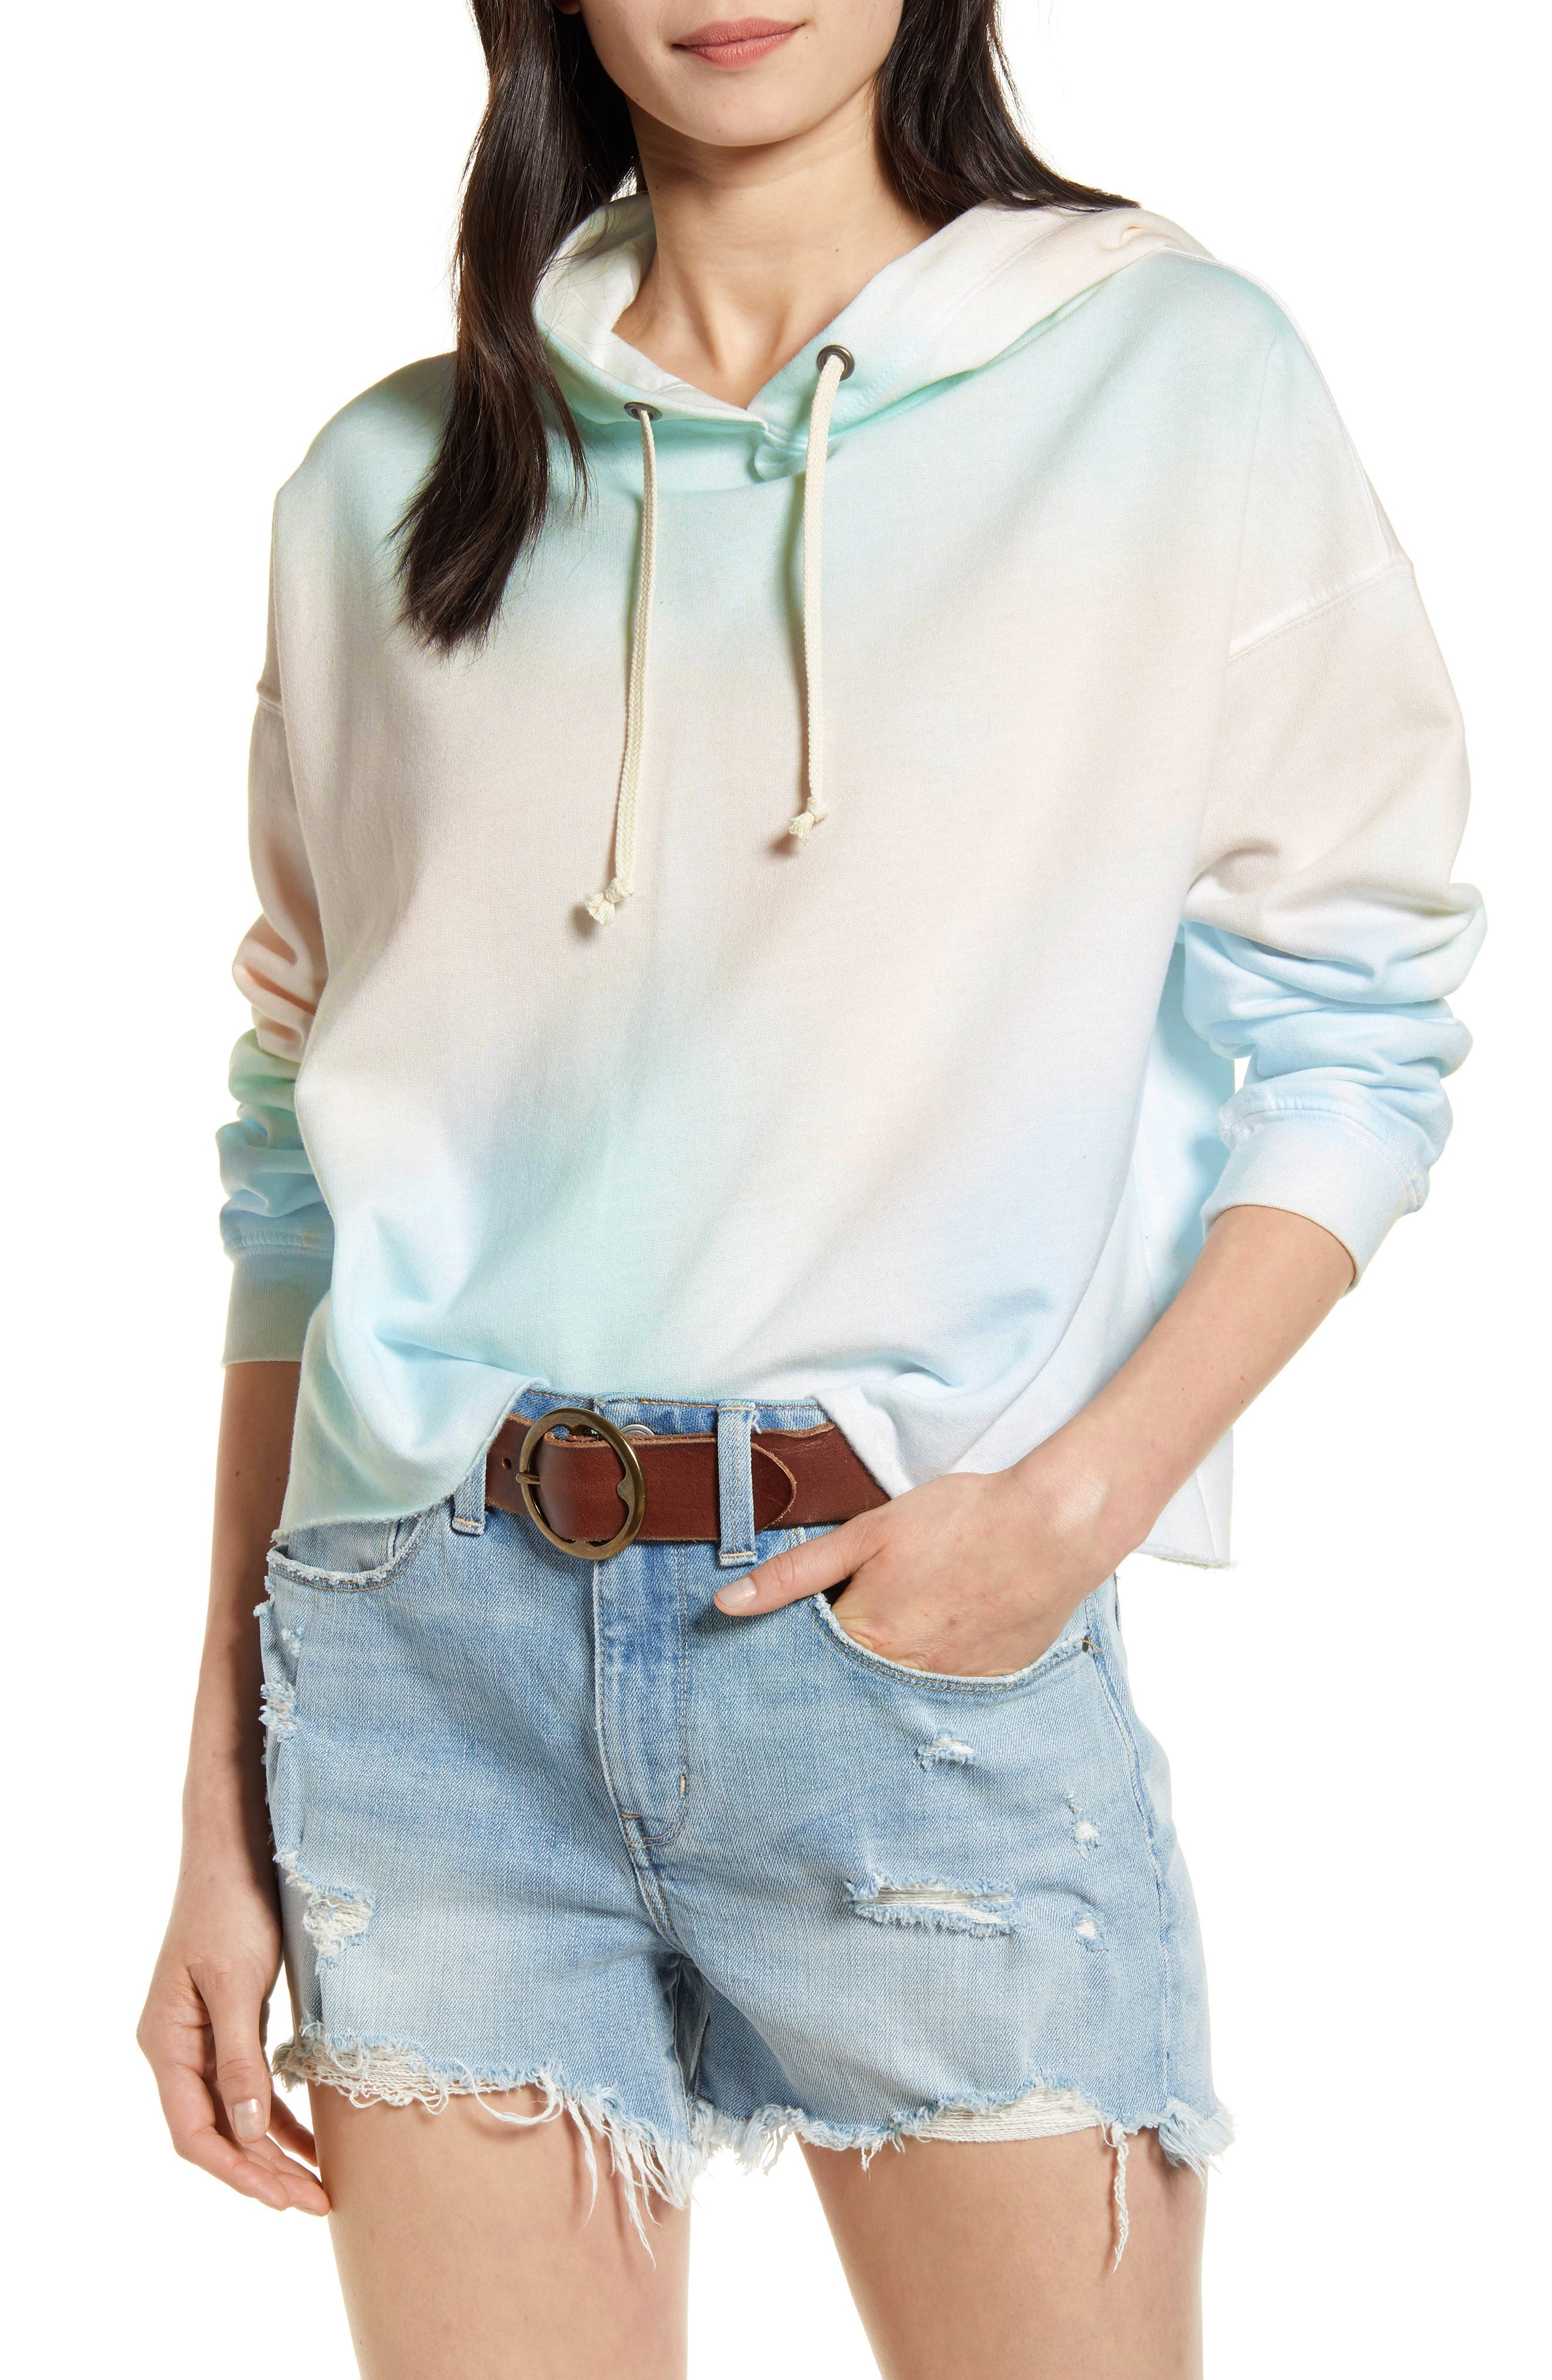 A pastel tie-dye pattern adds understated retro appeal to this ultra-cozy hoodie complete with a raw hem. When you buy Treasure & Bond, Nordstrom will donate 2.5% of net sales to organizations that work to empower youth. Style Name: Treasure & Bond Tie Dye Hoodie. Style Number: 6035246. Available in stores.